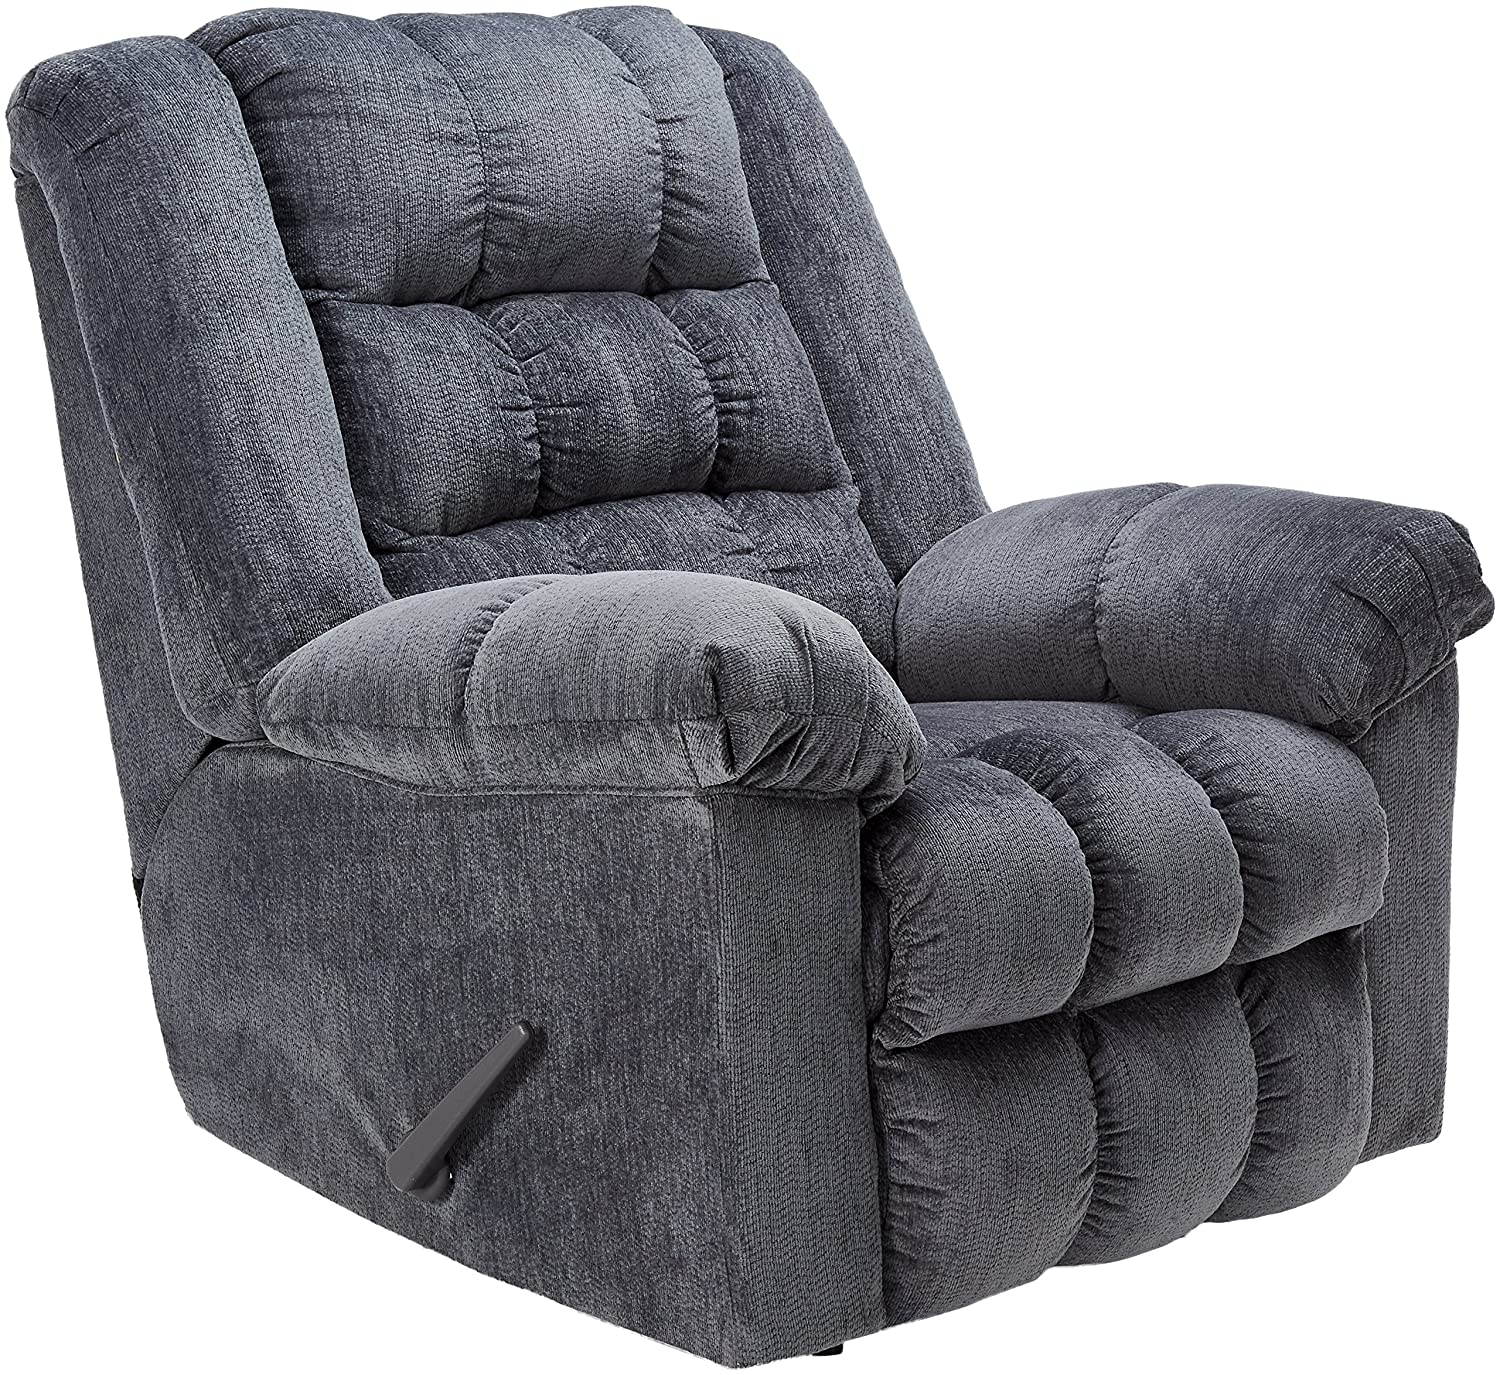 Ashley Furniture Ludden Recliner Signature Design With Manual Rocker